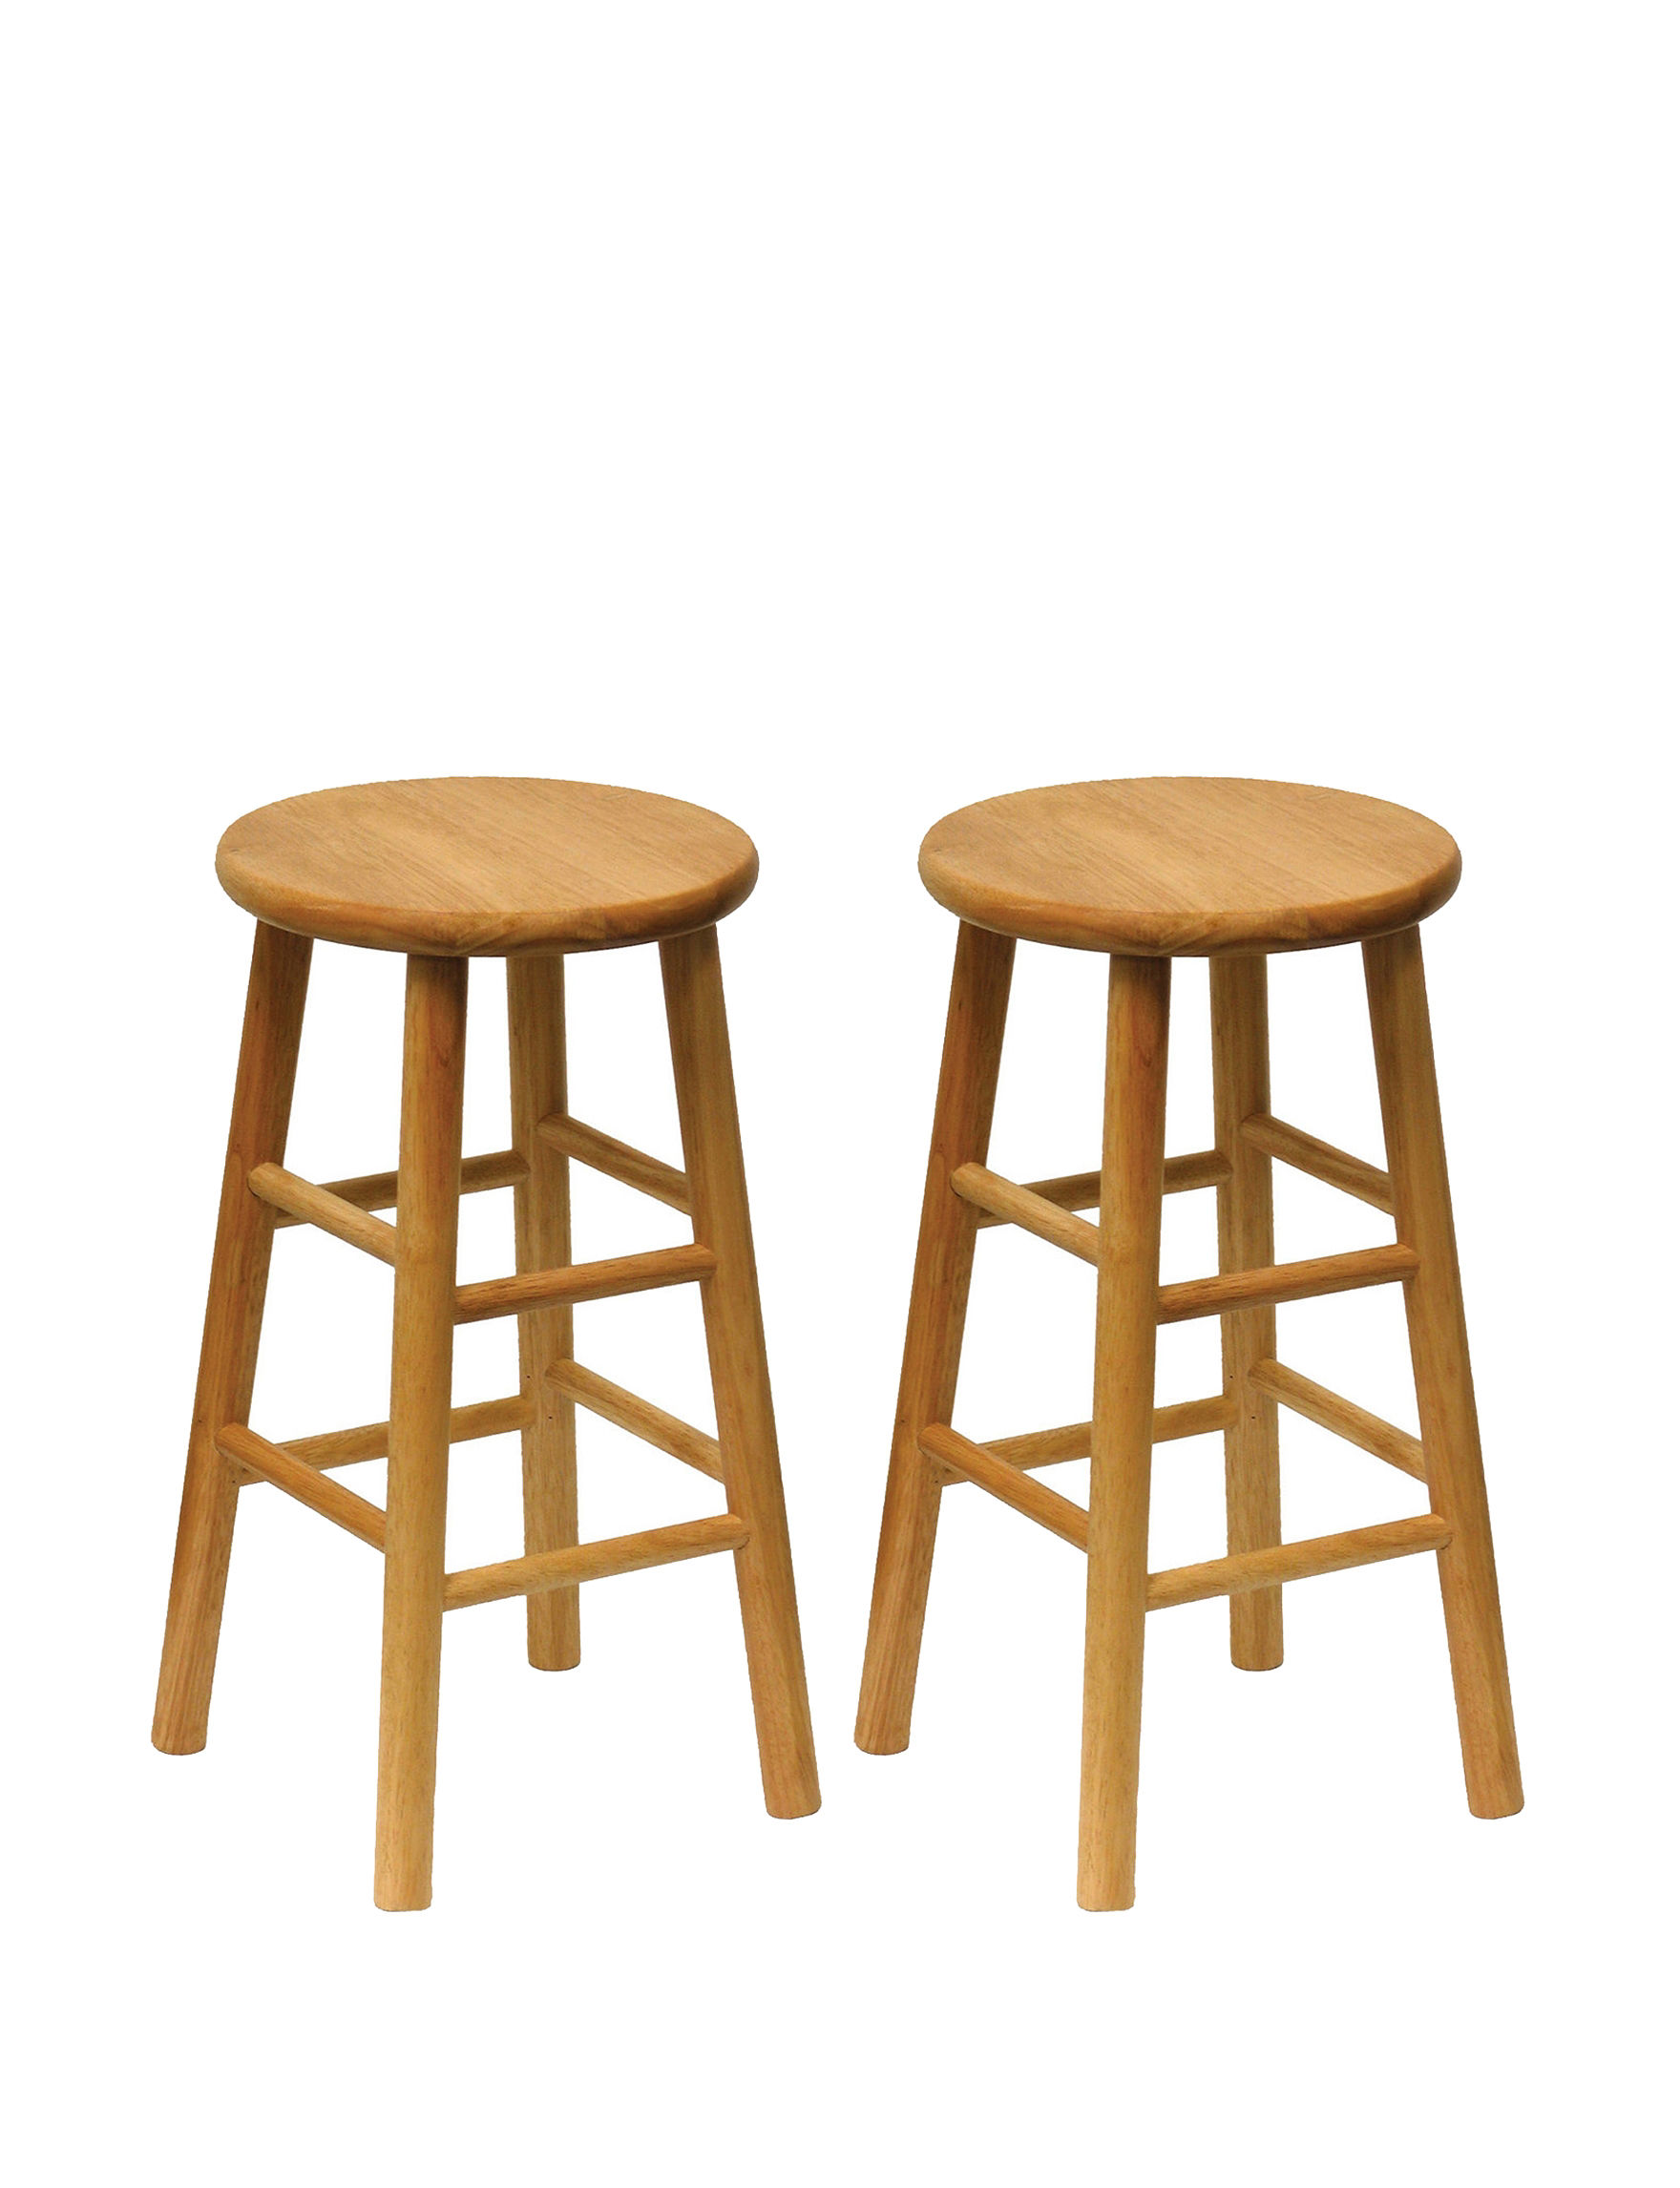 Winsome Tan Bar & Kitchen Stools Kitchen & Dining Furniture